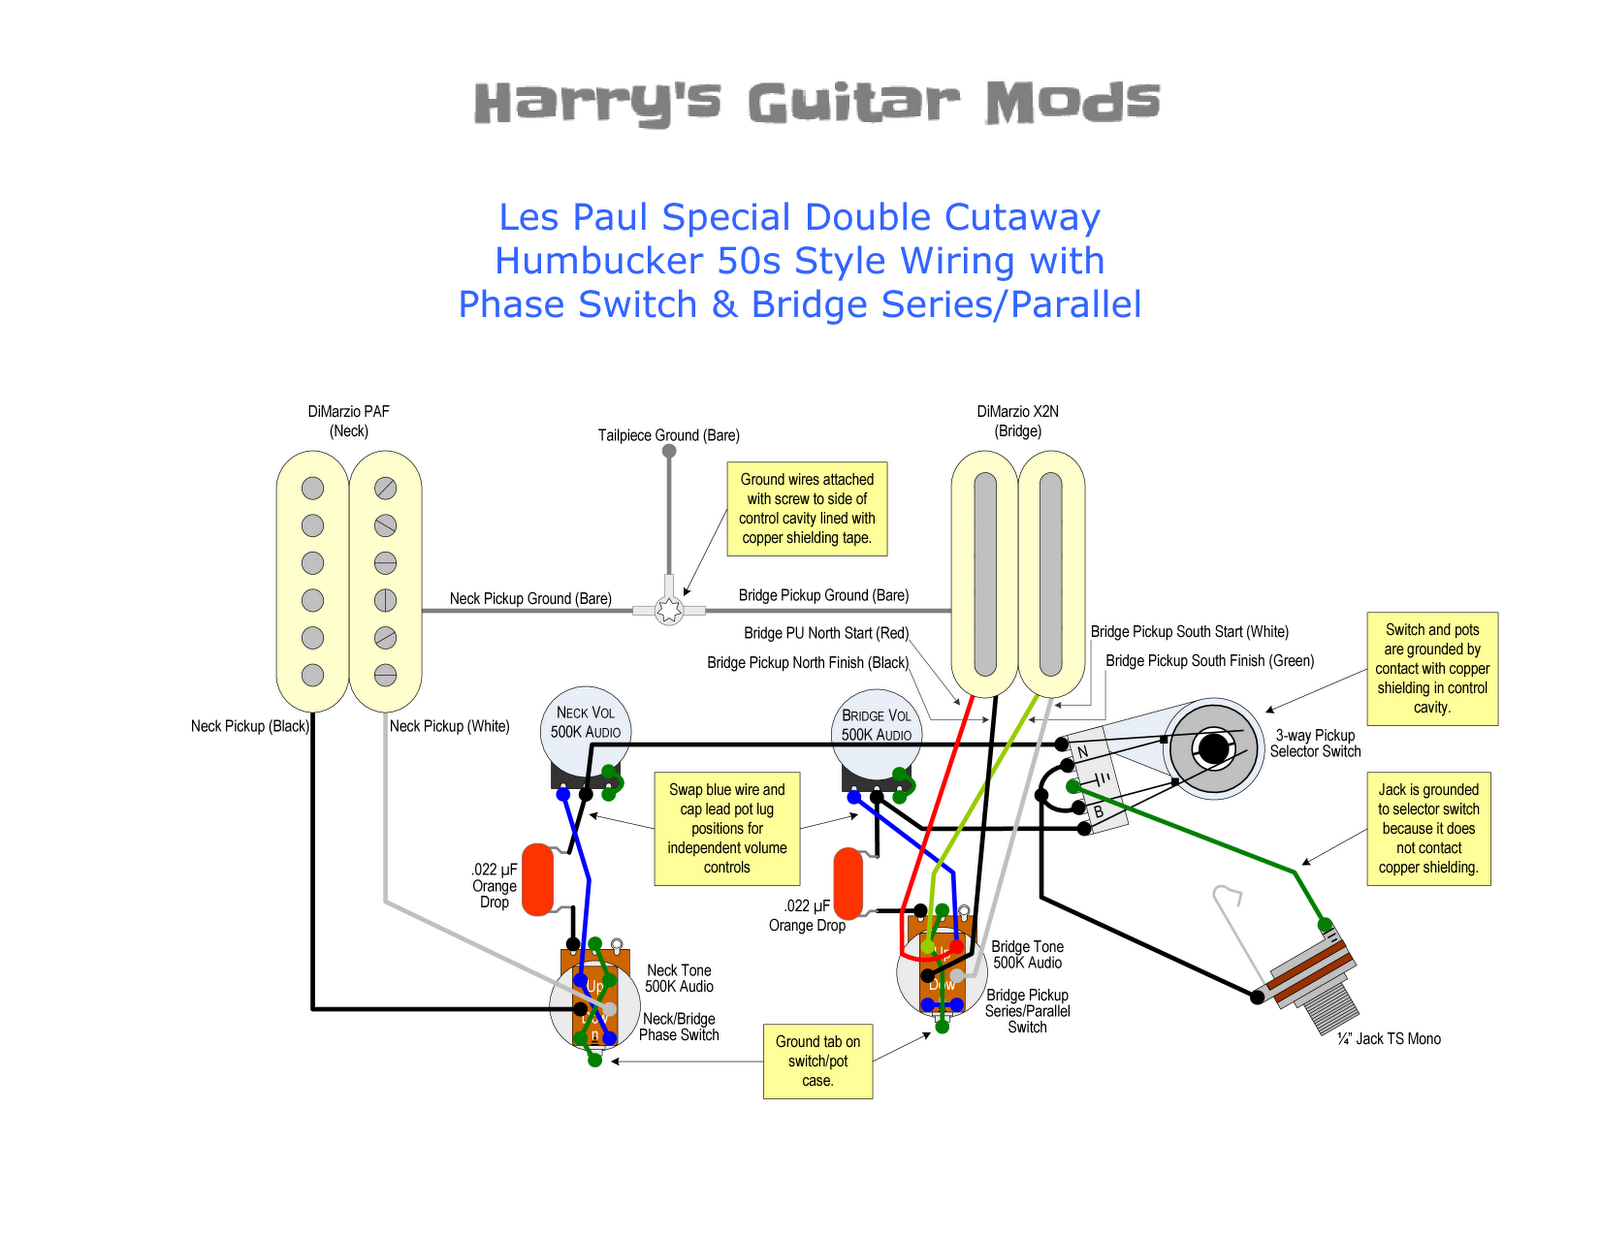 LPS+Wiring+Diagram harry's guitar mods controls wiring upgrade switchcraft jack wiring diagram at creativeand.co